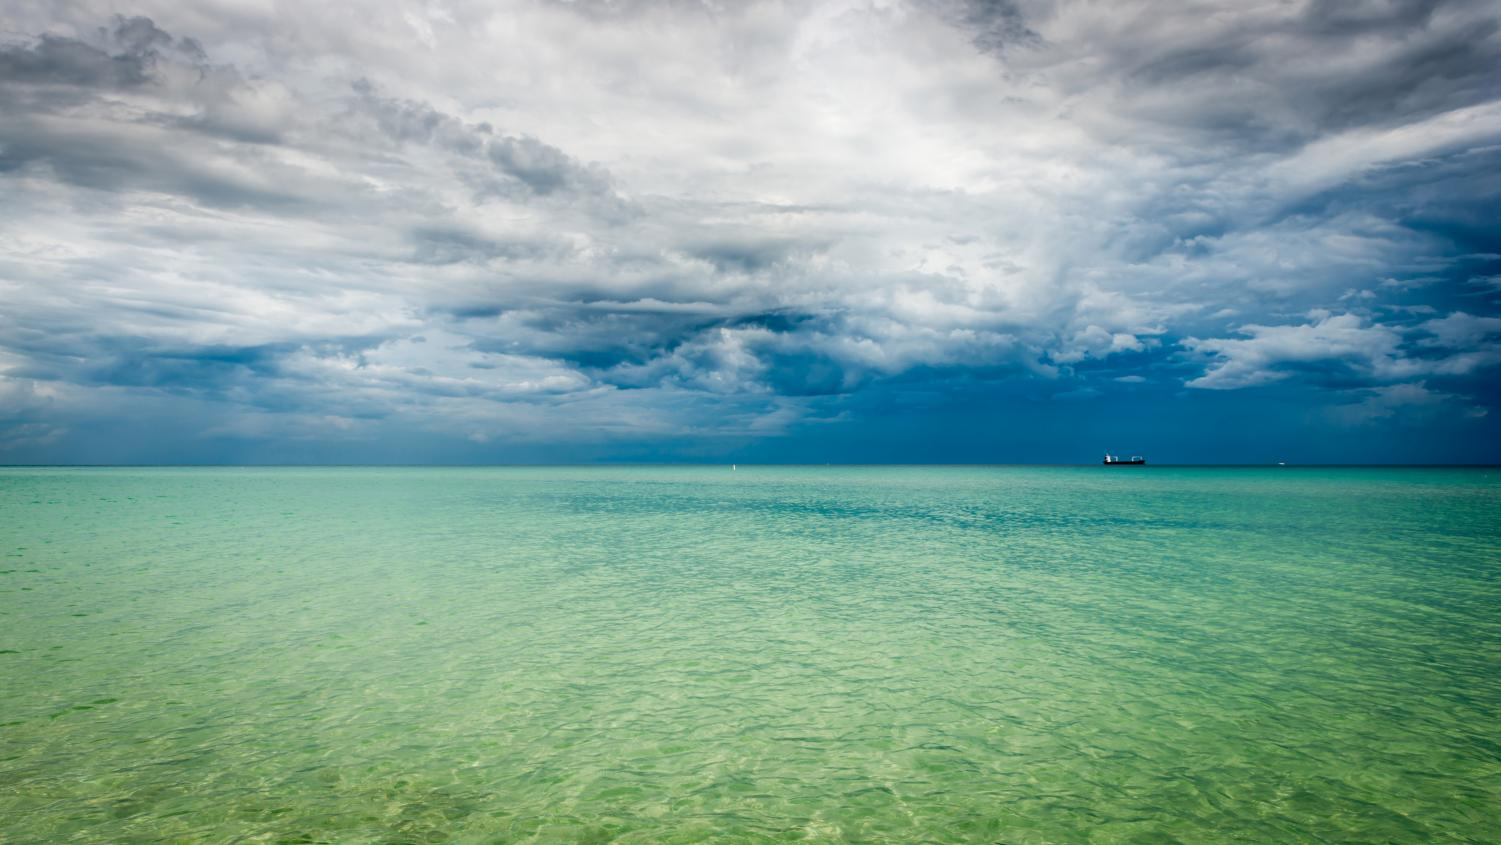 Miami Beach has put into action an aggressive and expensive plan to combat the effects of sea level rise.(Dreamstime/TNS)